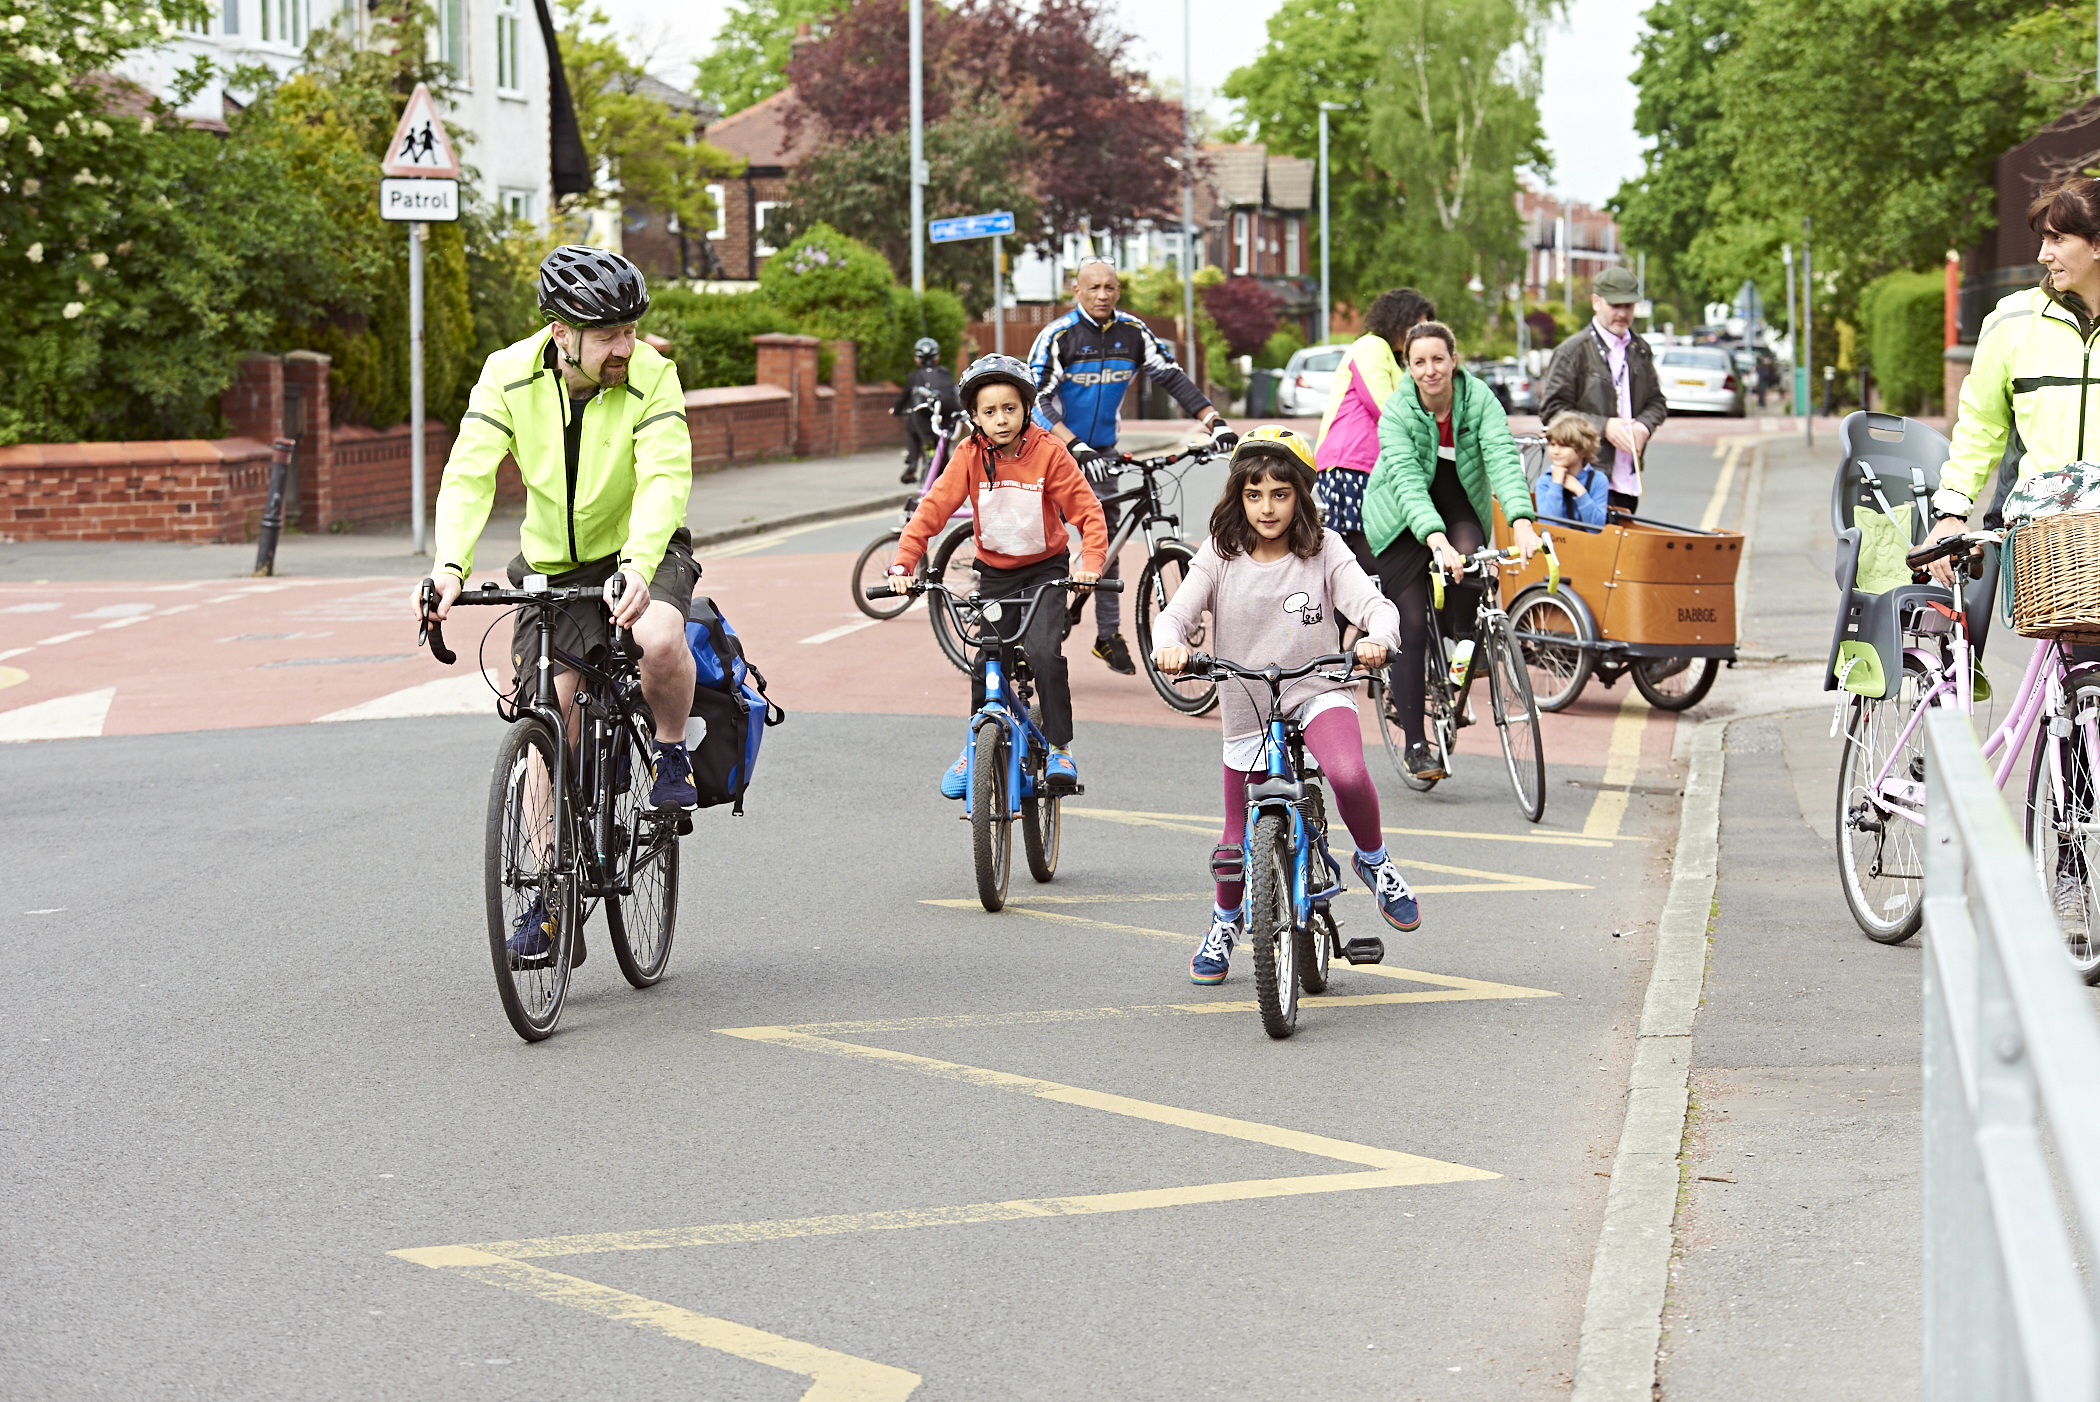 children and adults riding bikes